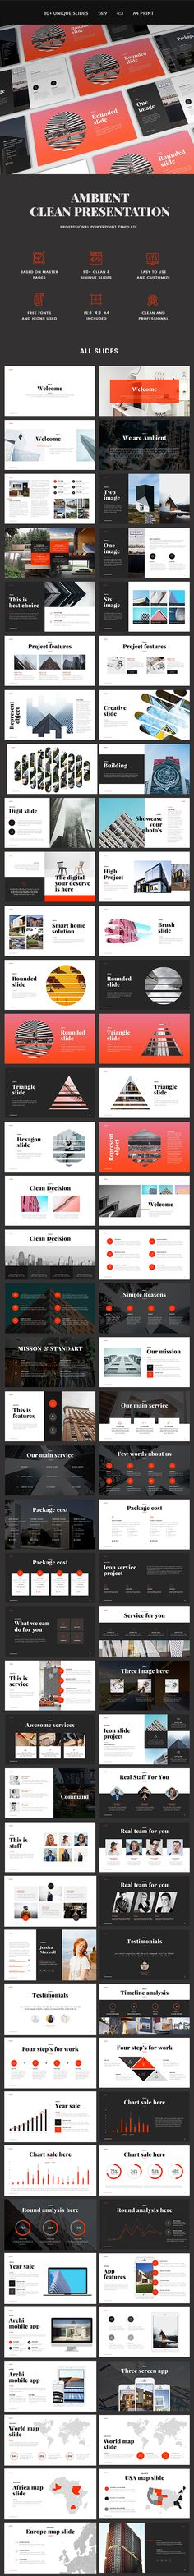 Ambient - PowerPoint Presentation Template